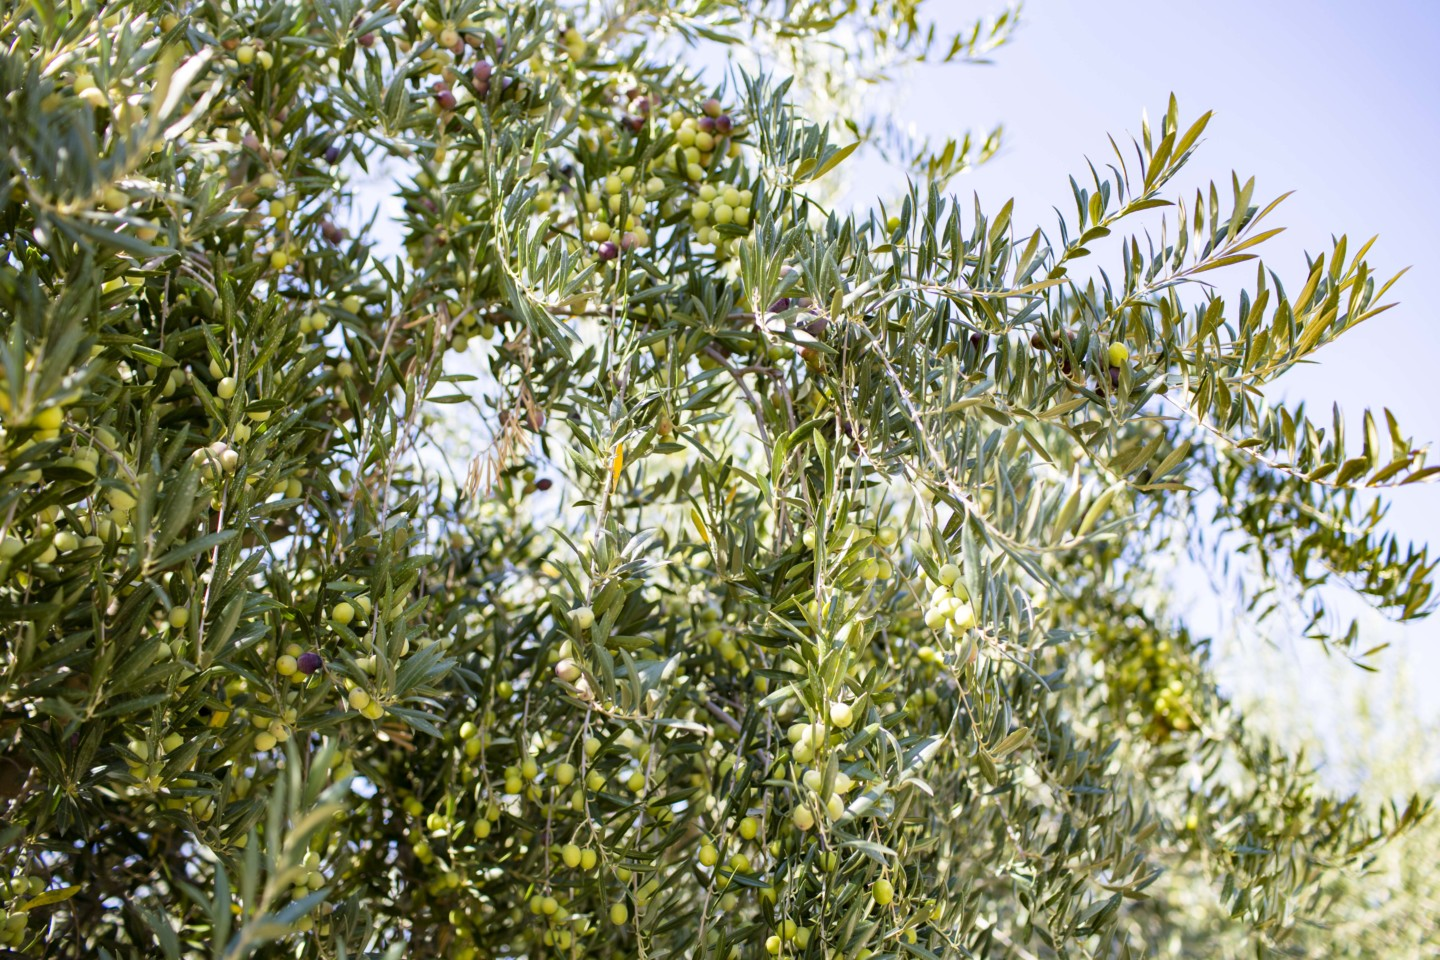 Olive trees, where we get our olives to press into extra virgin olive oil.